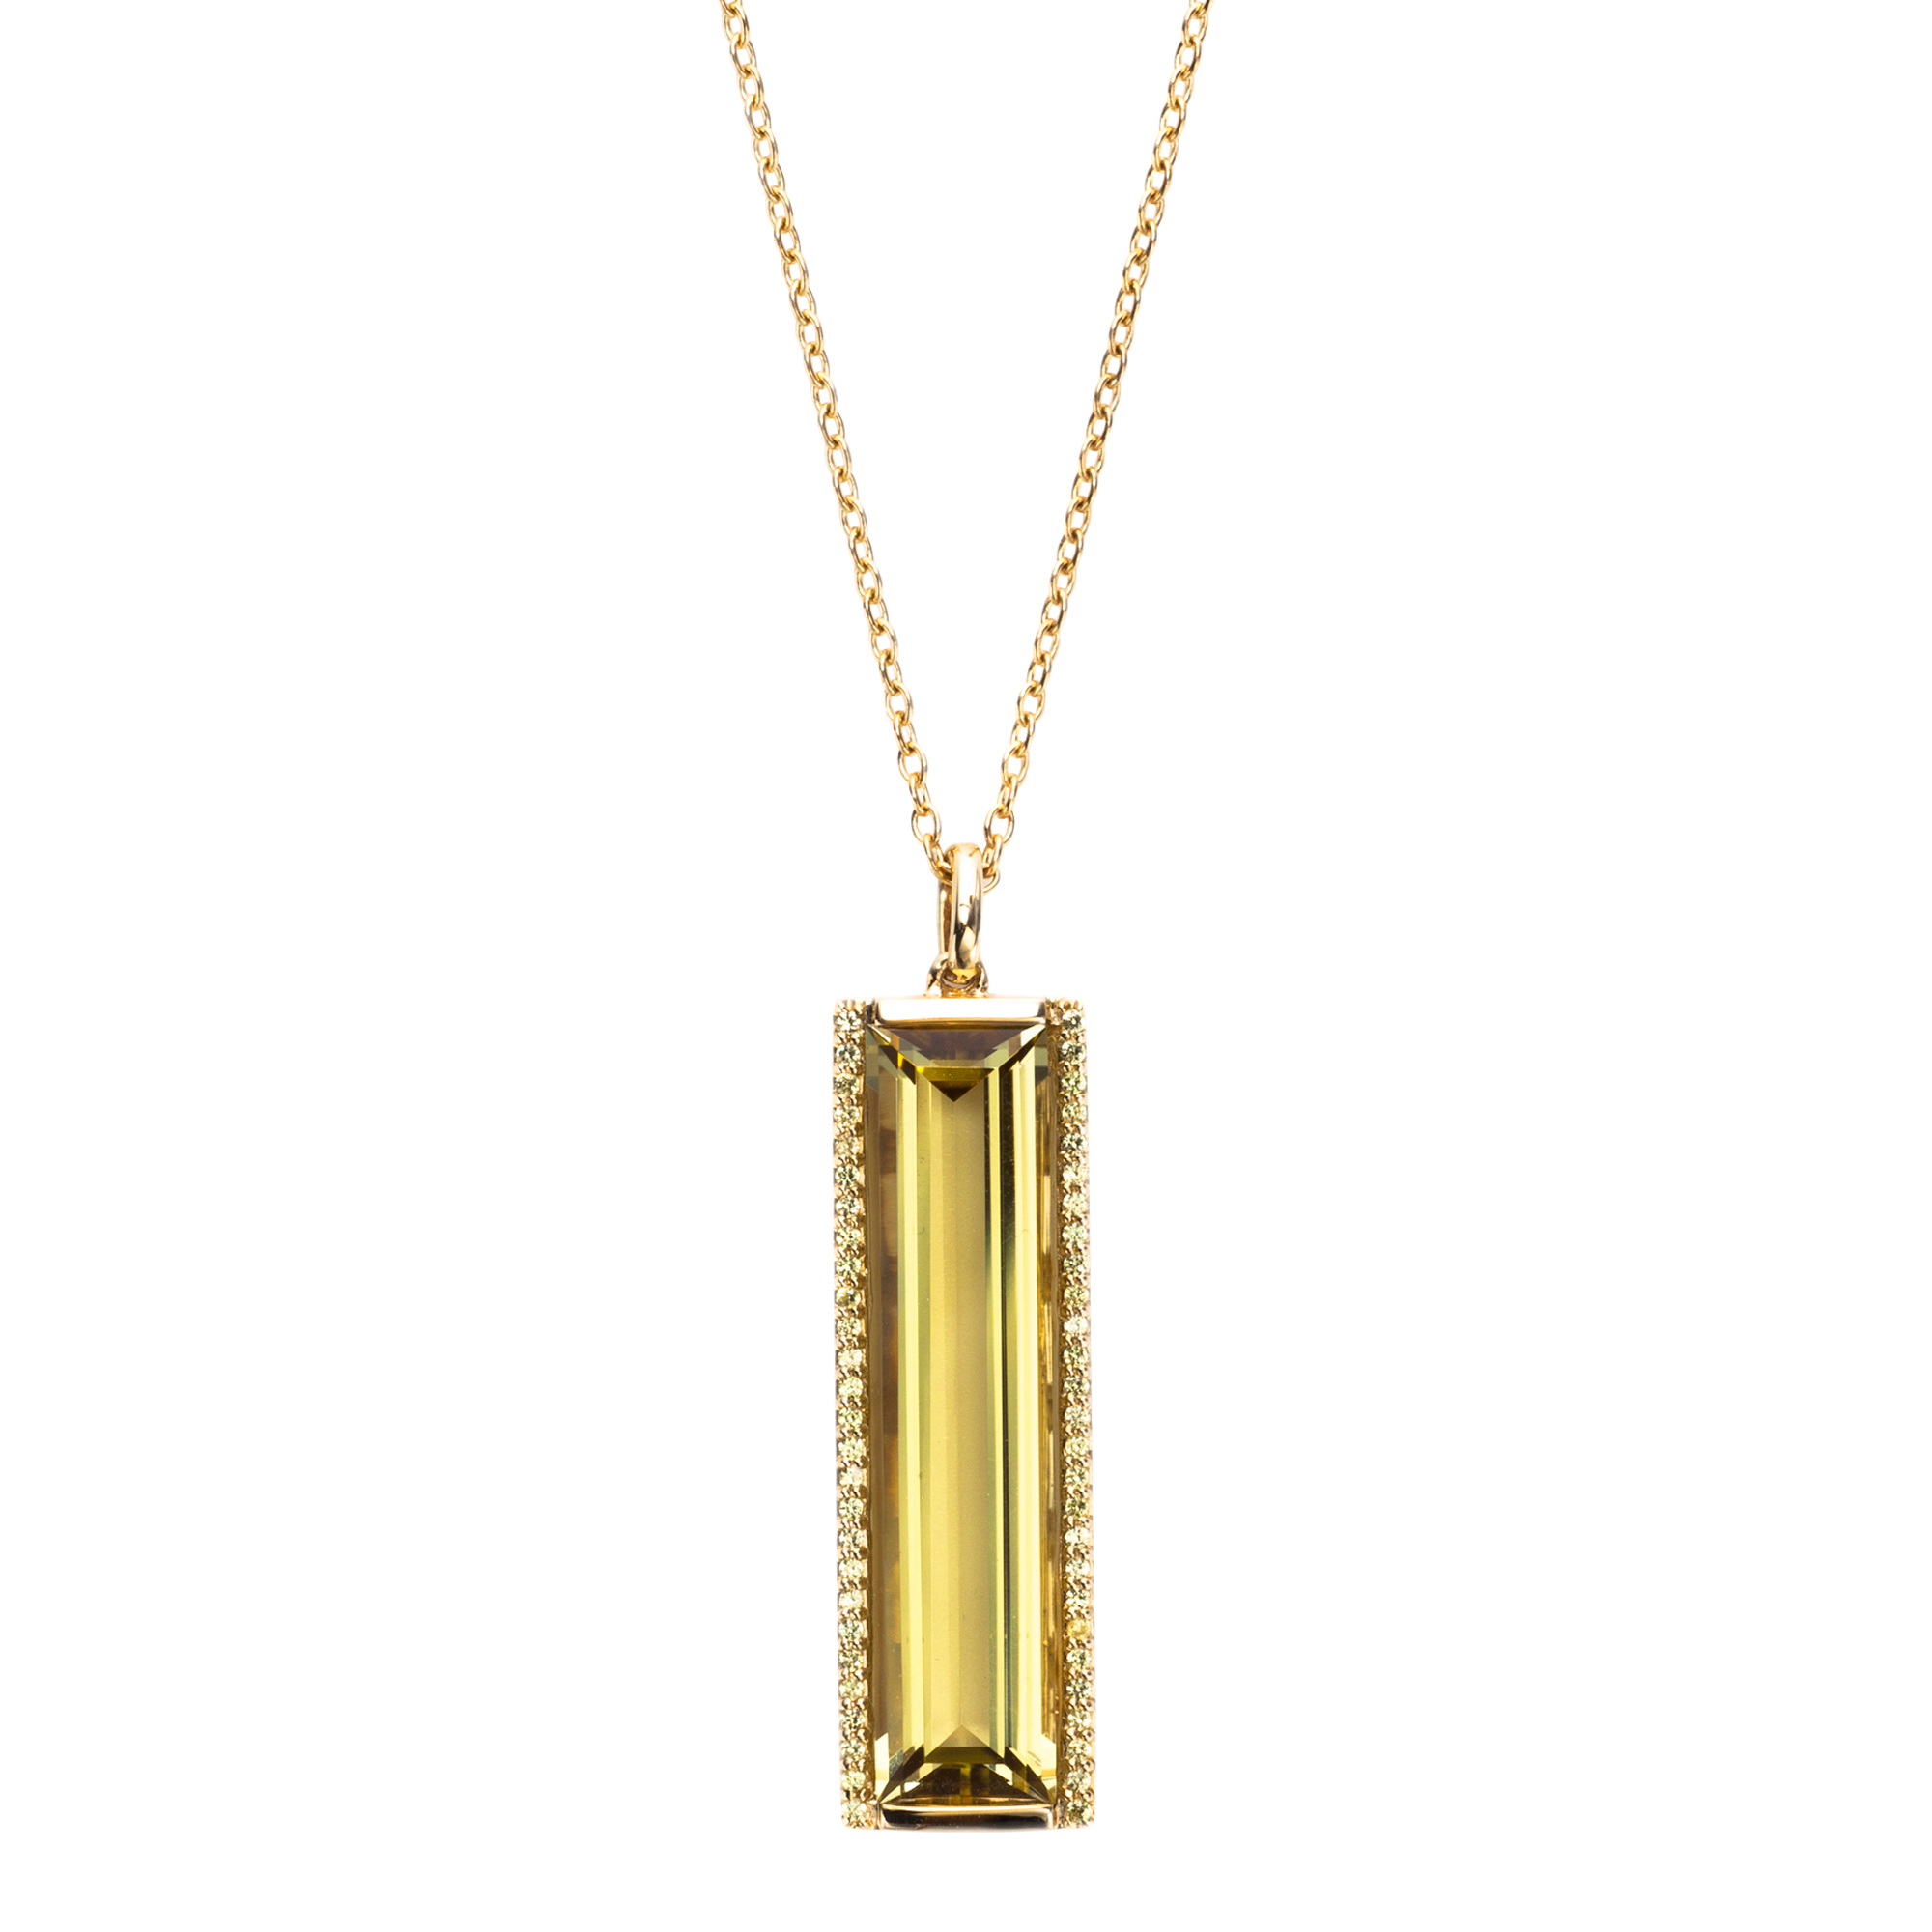 Jane Taylor Lemon Quartz & Pavé Diamond Vertical Bar Necklace